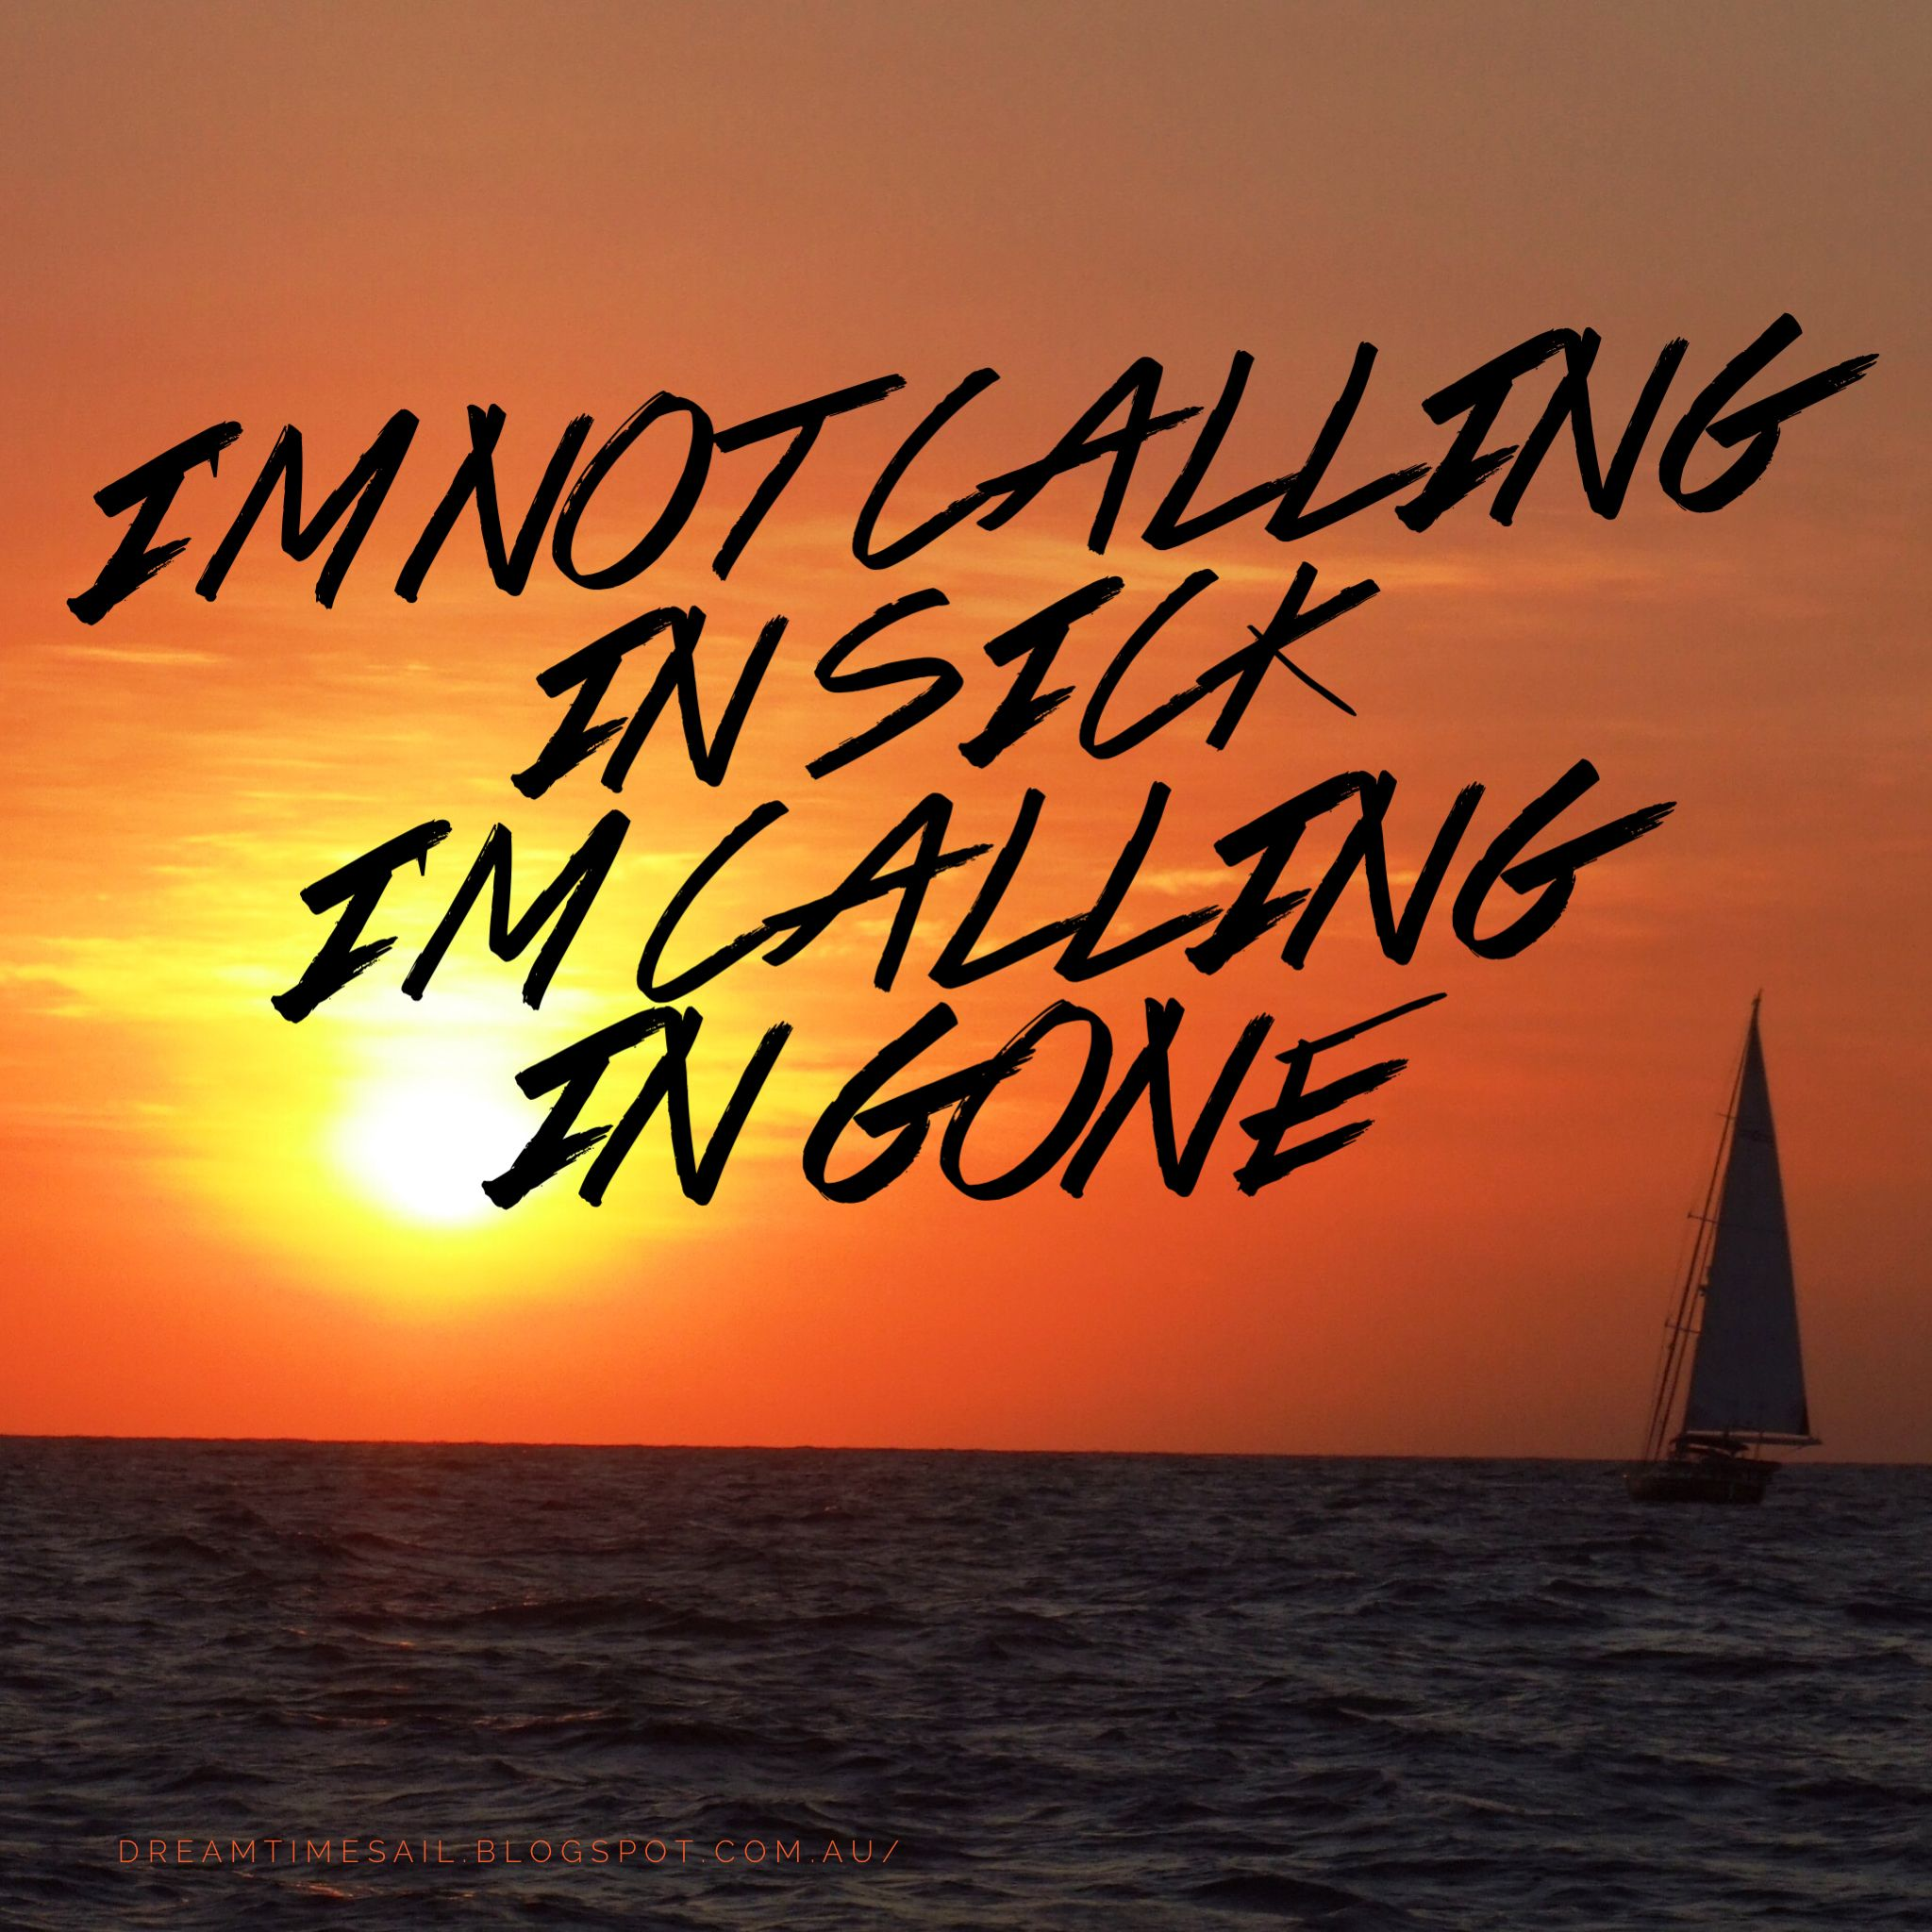 I'm not calling in sick #daretodream #livingthedream #dreamtimesail #travelbysea #lifeisgood #dreambelieveachieve